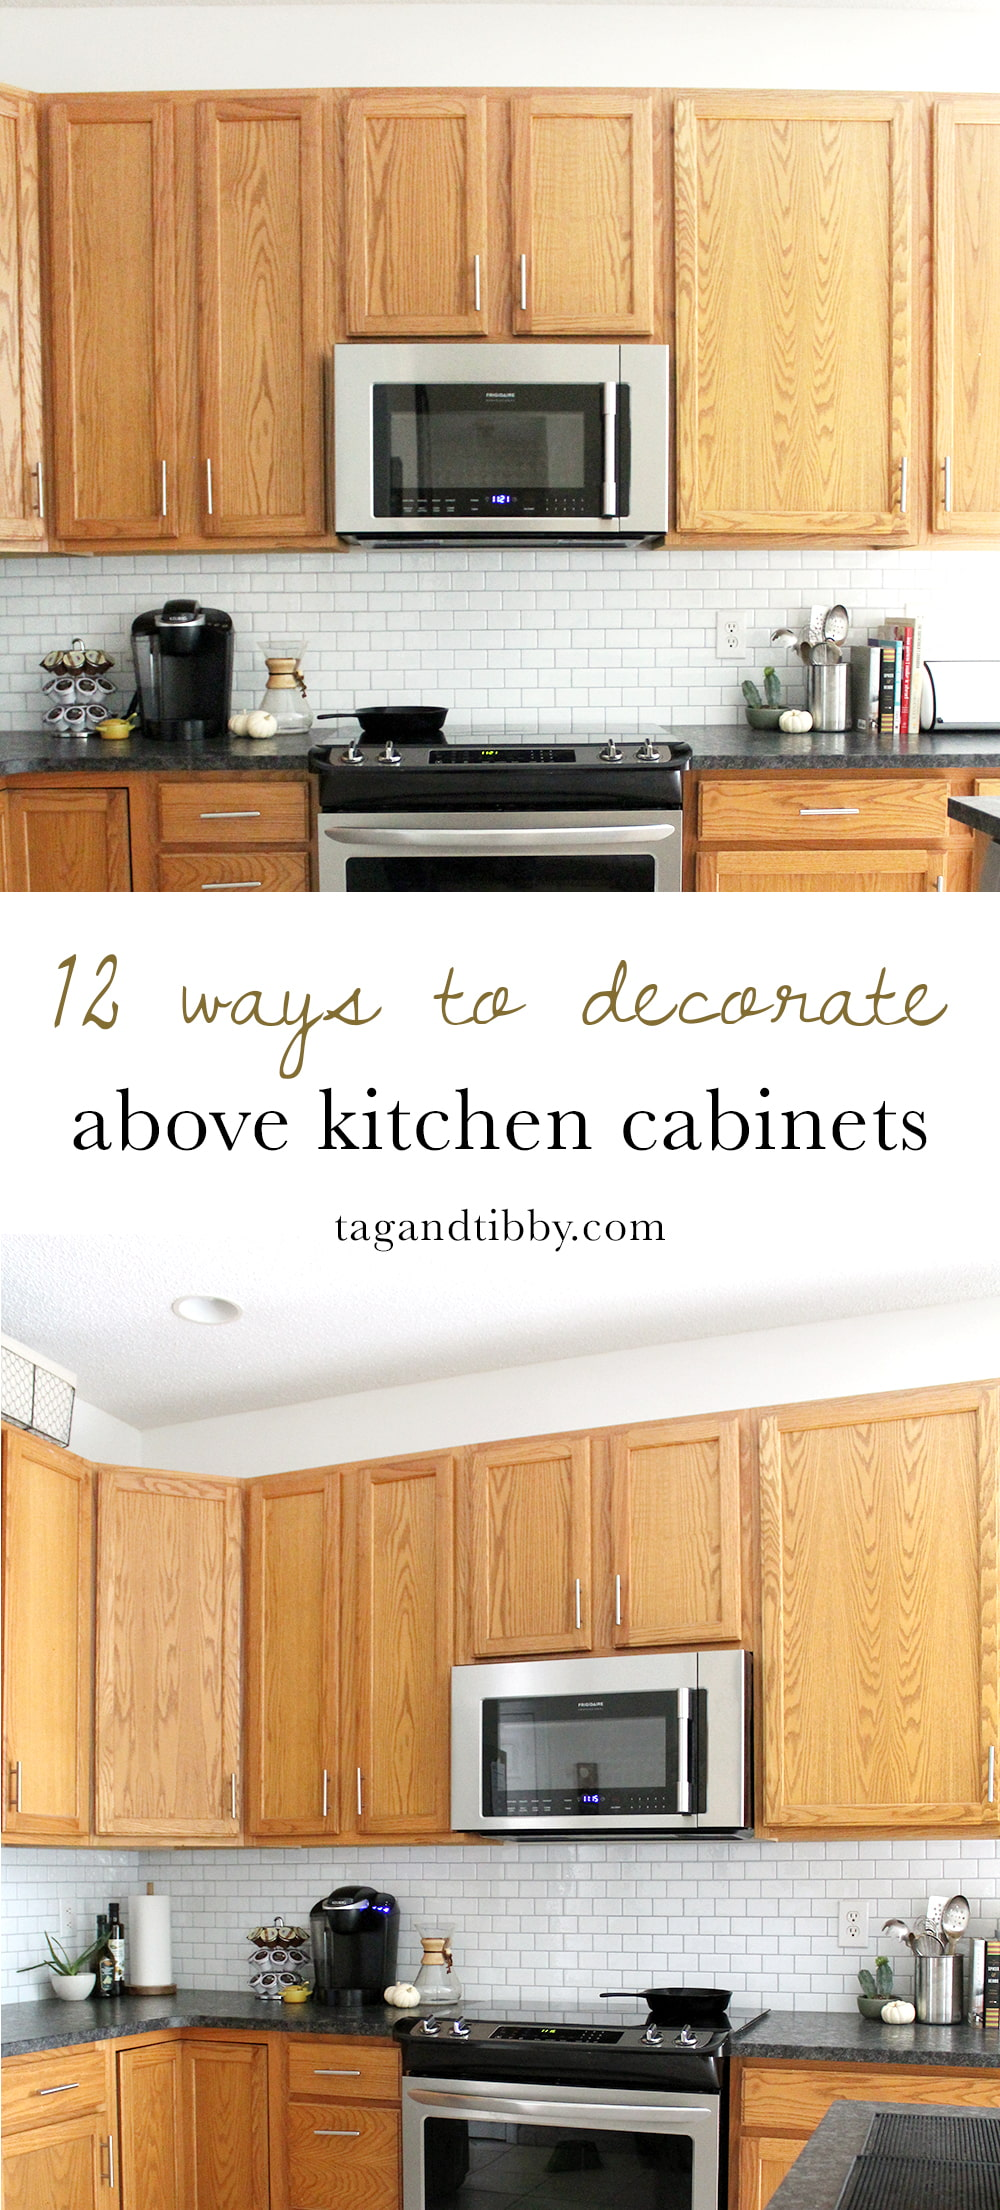 12 Ways to Decorate Above Kitchen Cabinets — Tag & Tibby Design